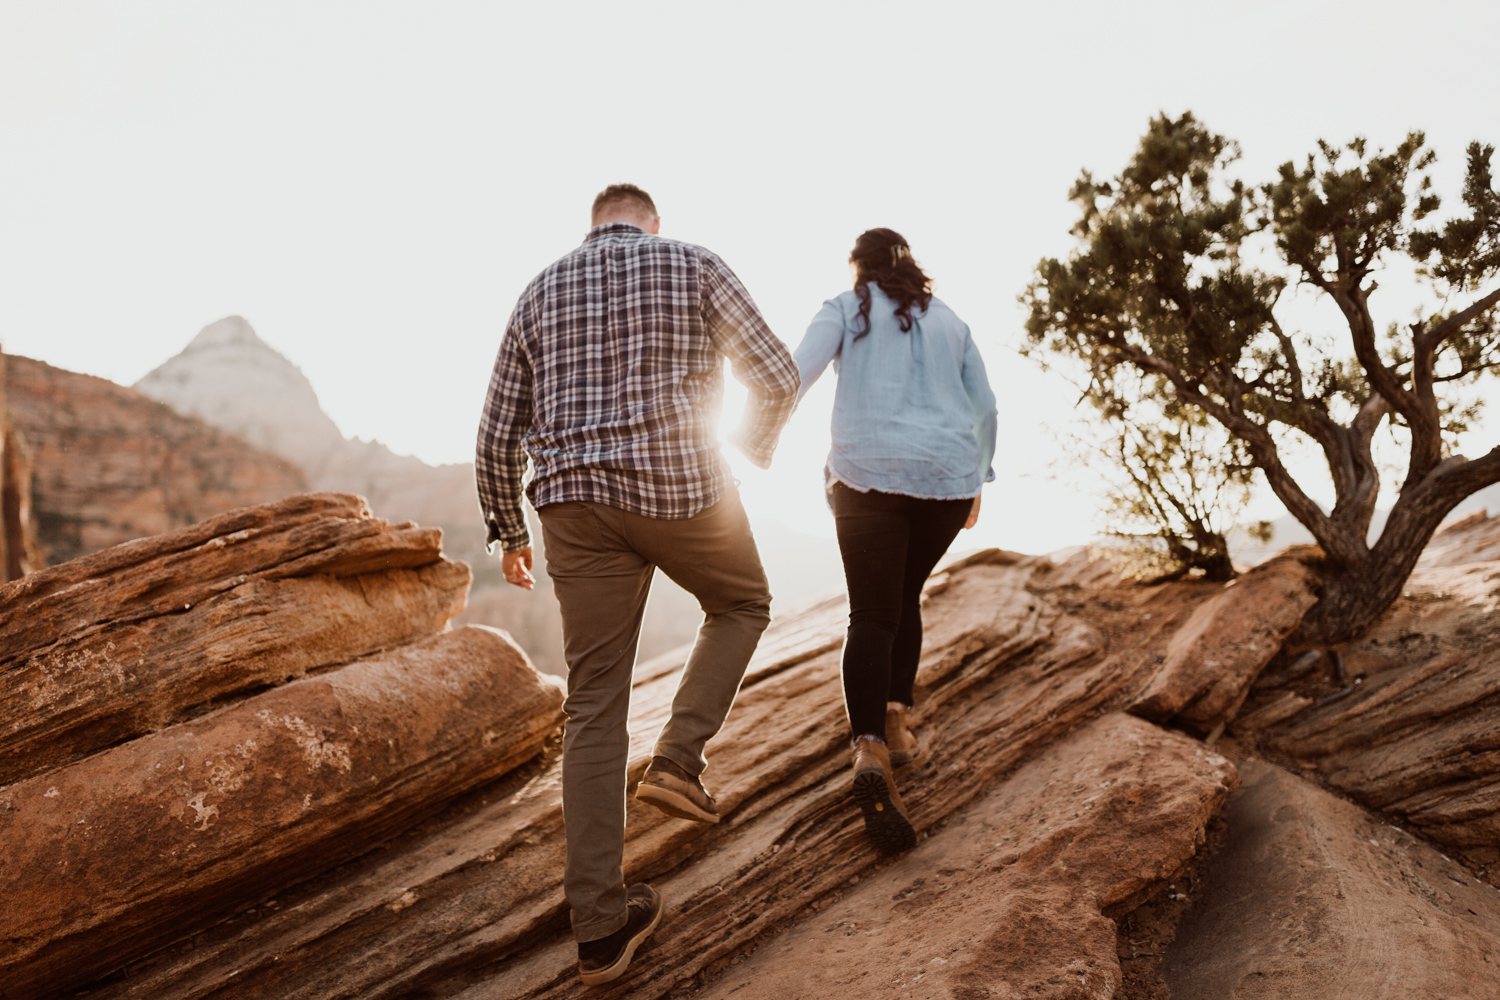 zion-national-park-engagements-24.jpg